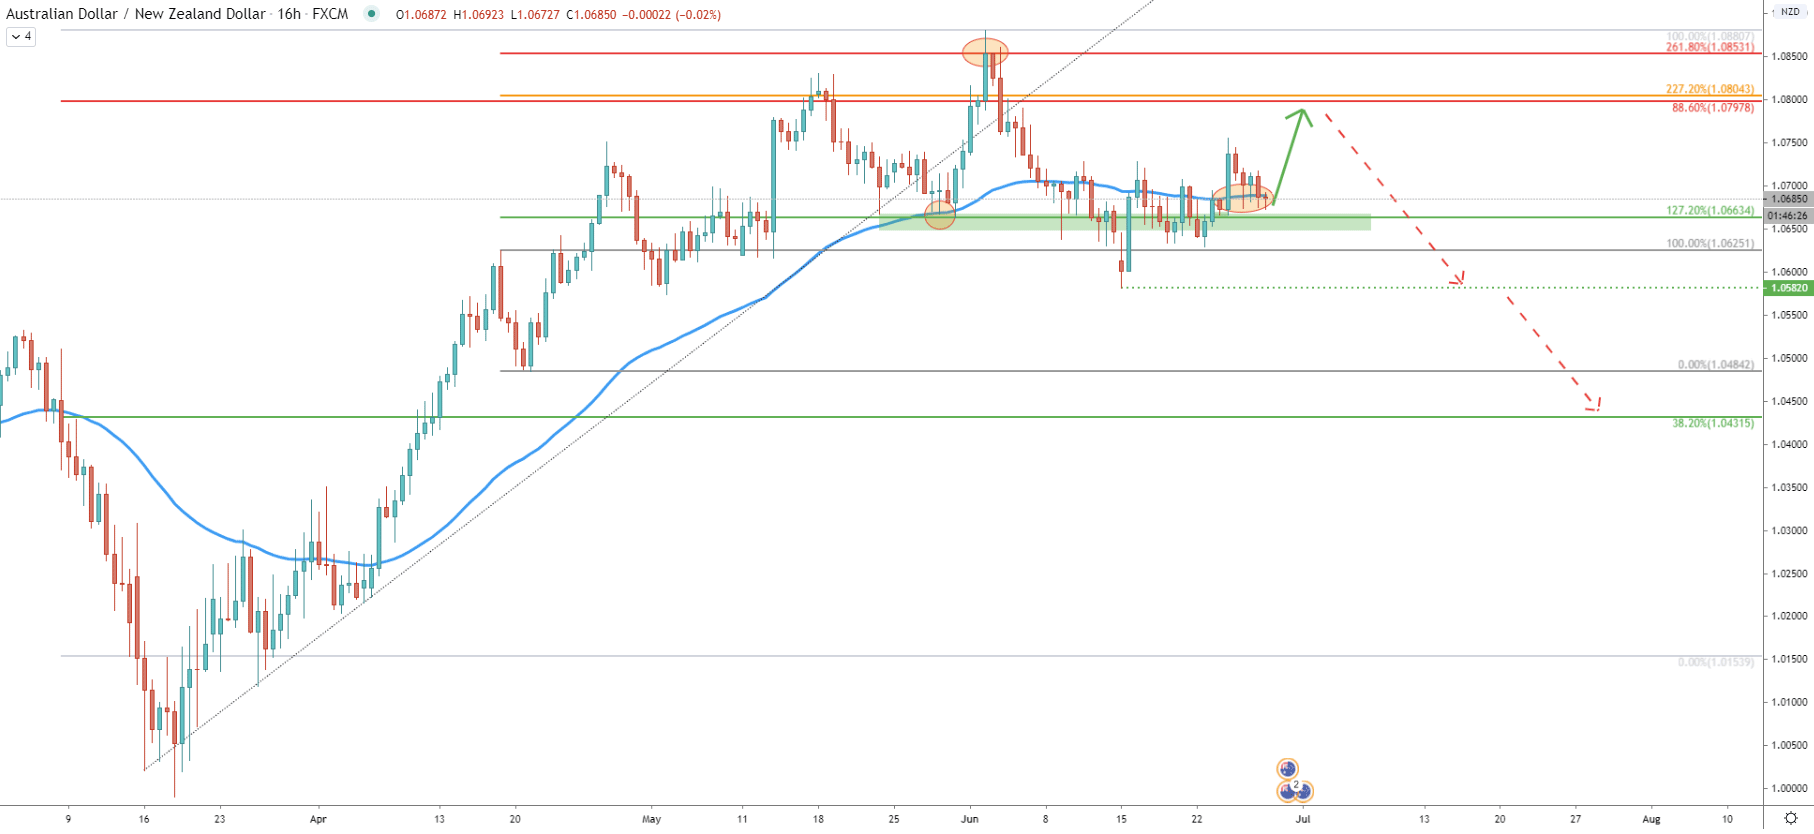 AUD/NZD 16-Hour Technical Analysis 26 June 2020